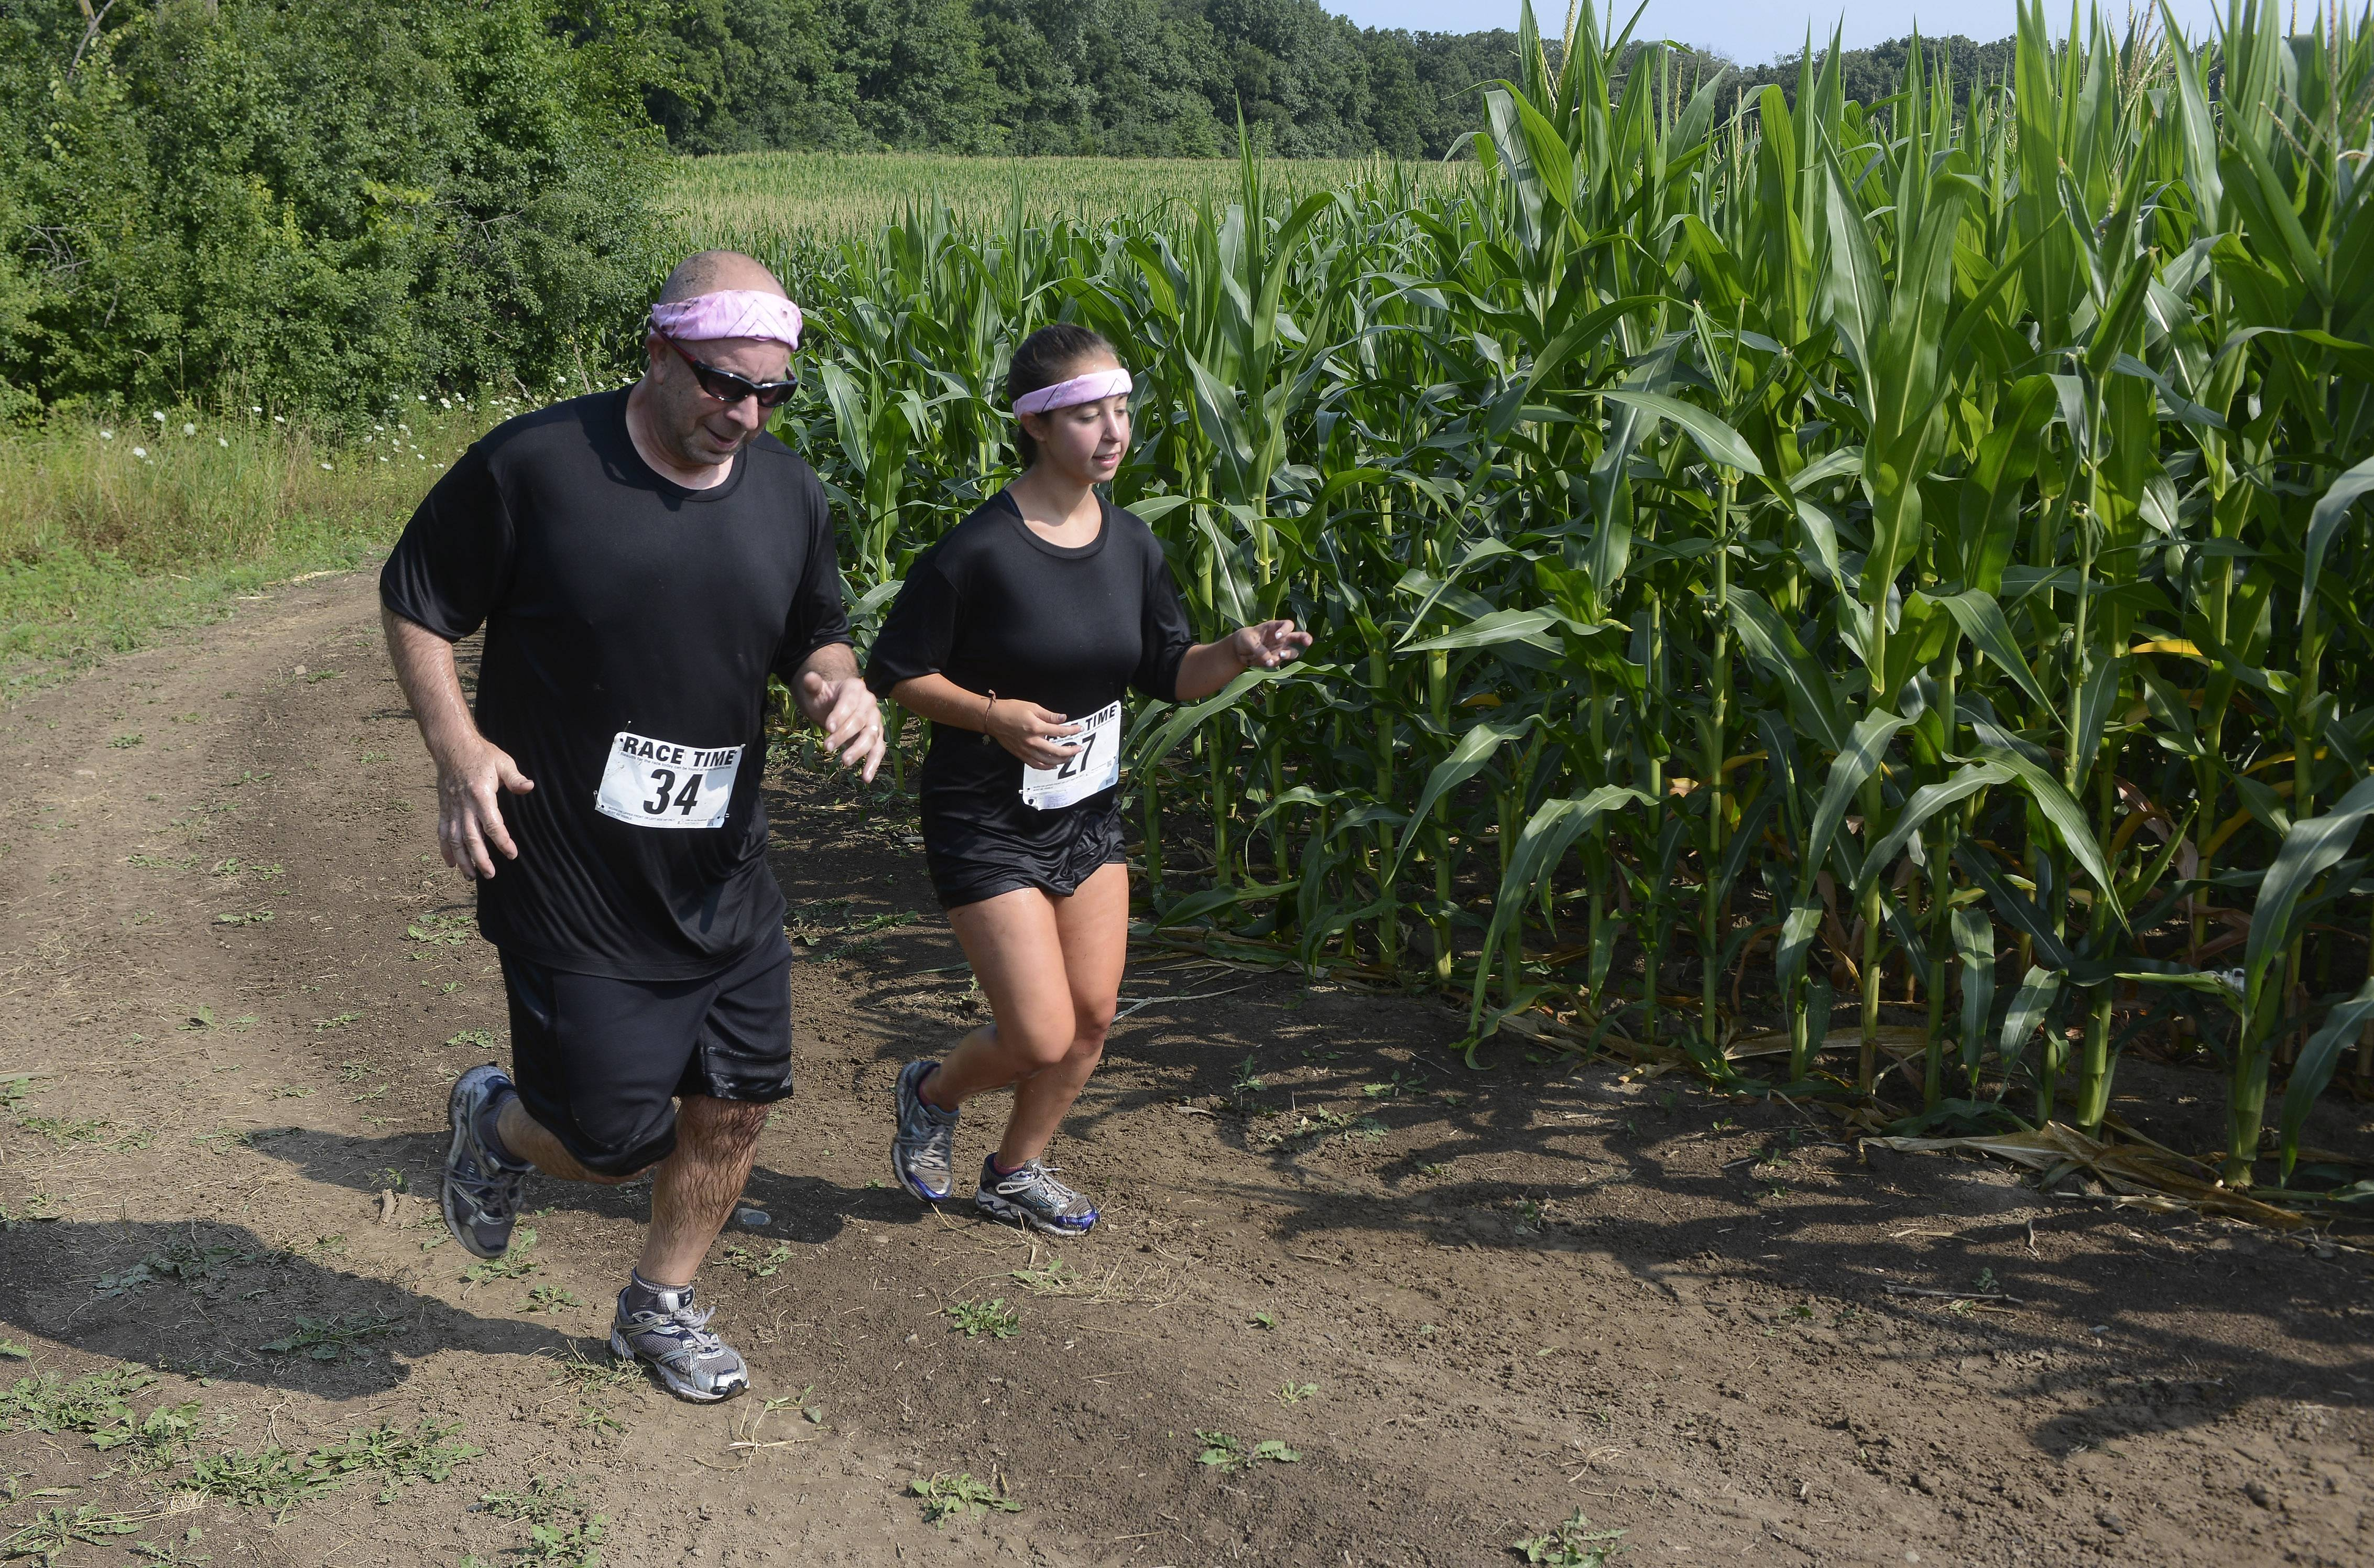 Larry Appelbaum of Vernon Hills and his daughter, Carlee, compete in Saturday's Mud Run at Caboose Park in Lake Villa.